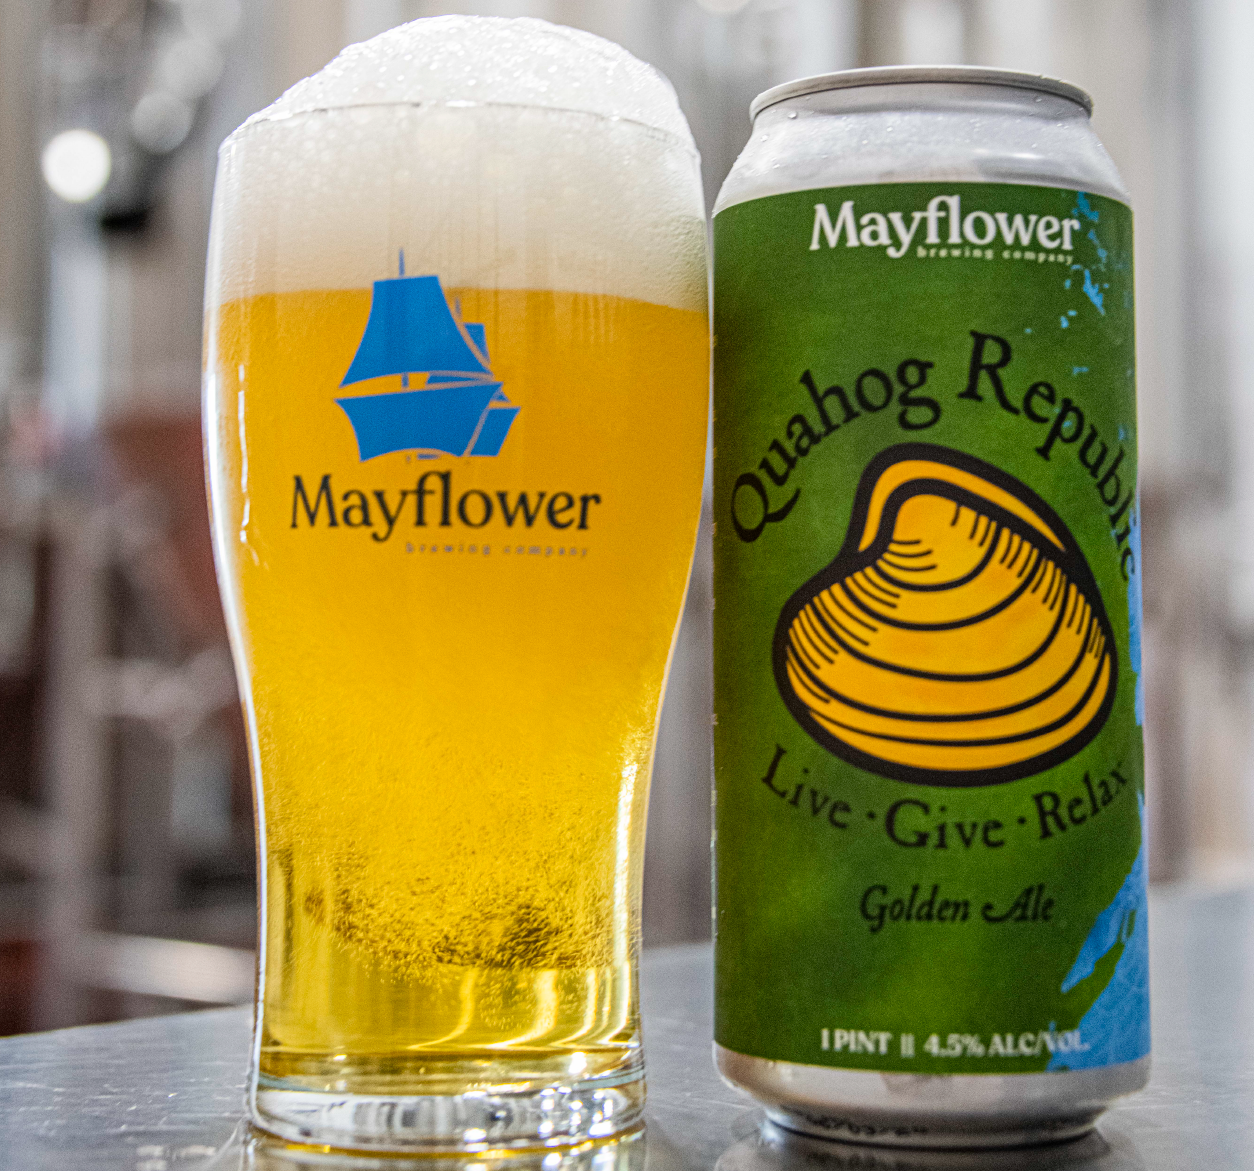 Enjoy our Quahog Republic Golden Ale!